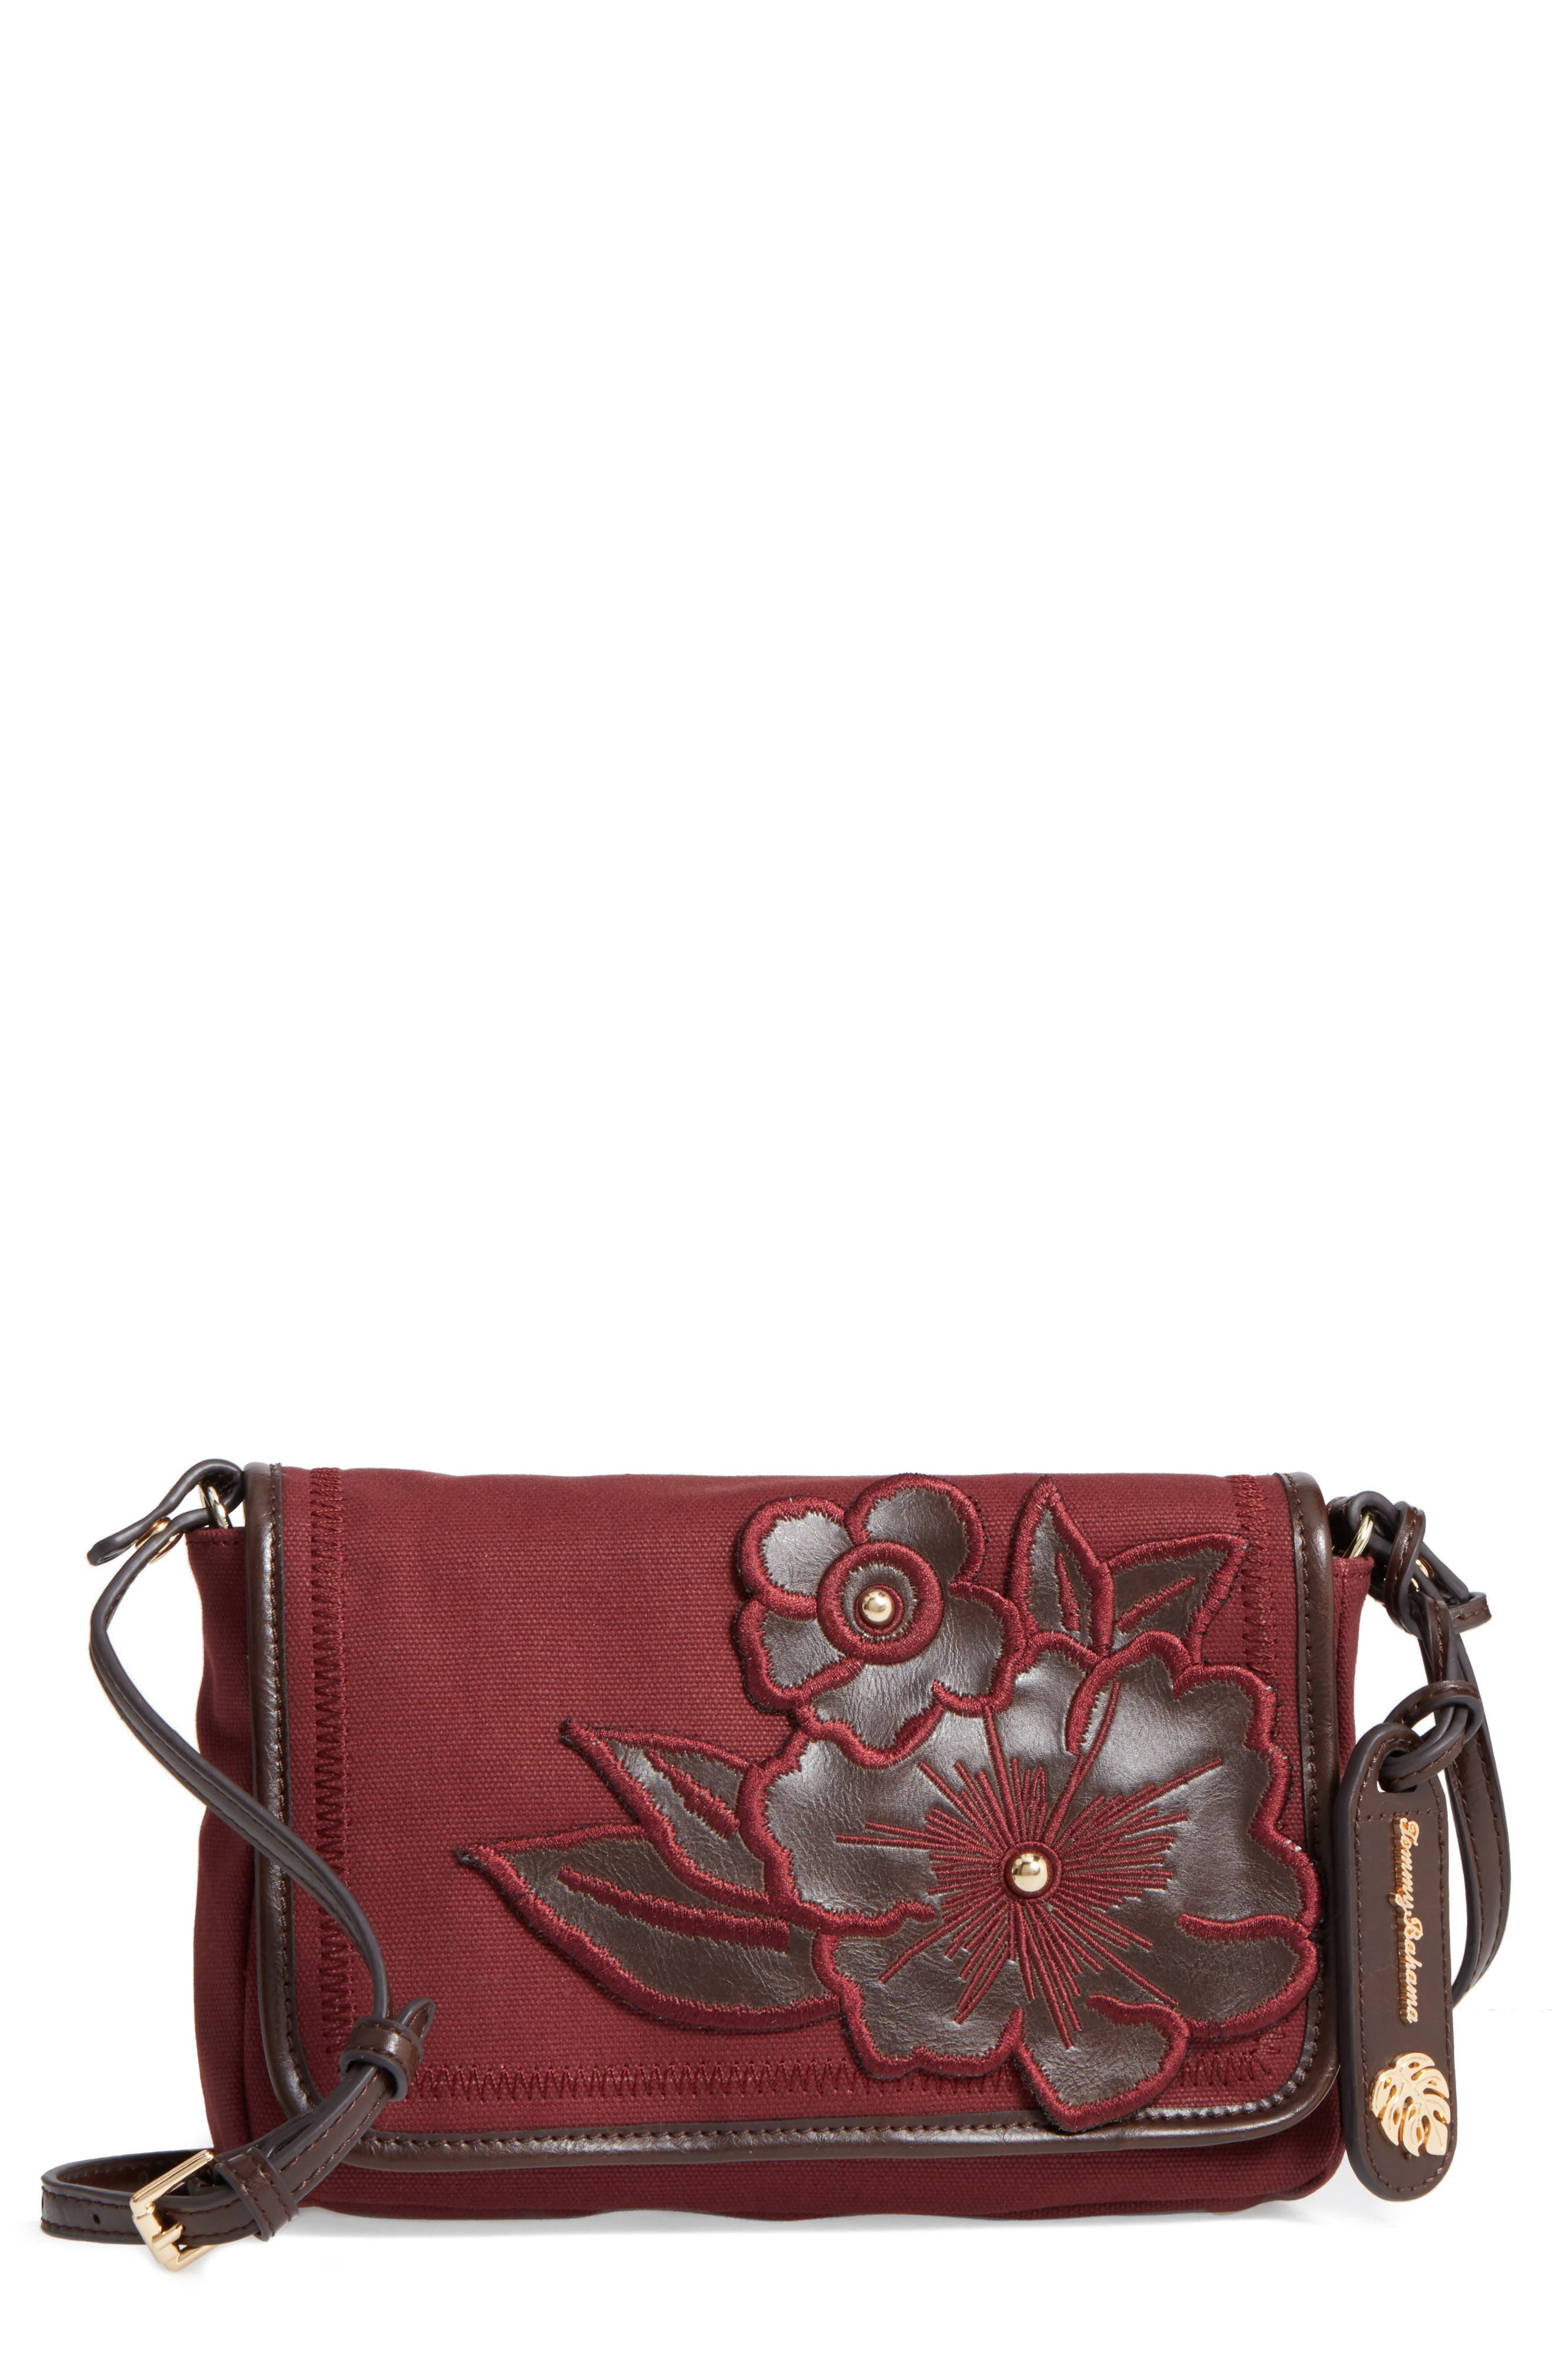 Main Image - Tommy Bahama Casbah Convertible Canvas Crossbody Bag